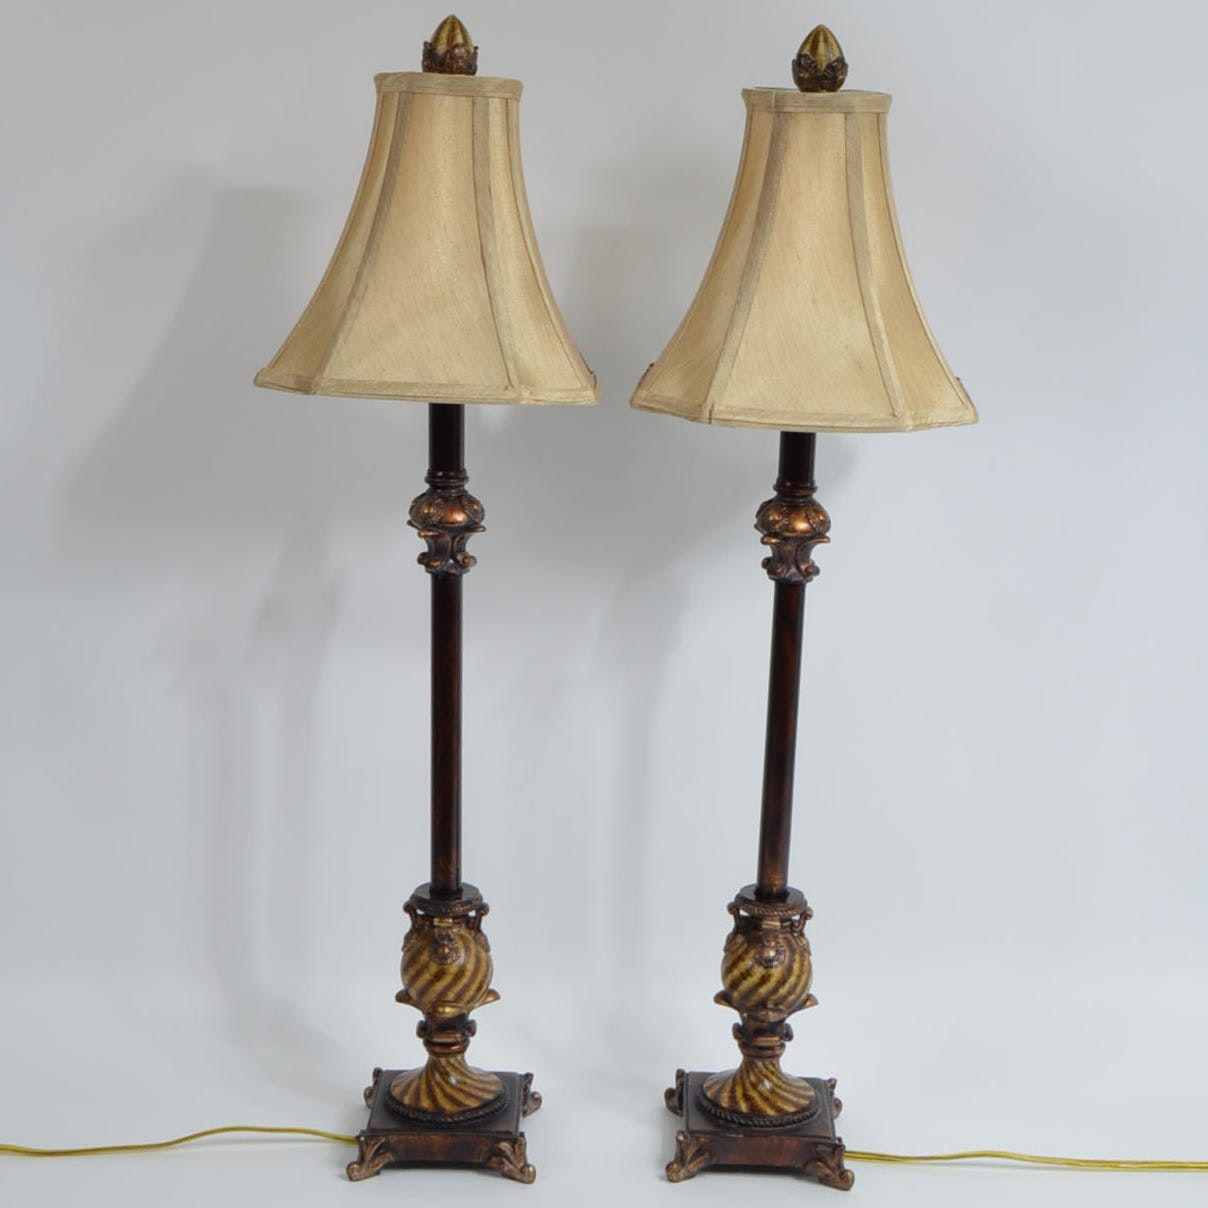 French Style Candlestick Table Lamps ...